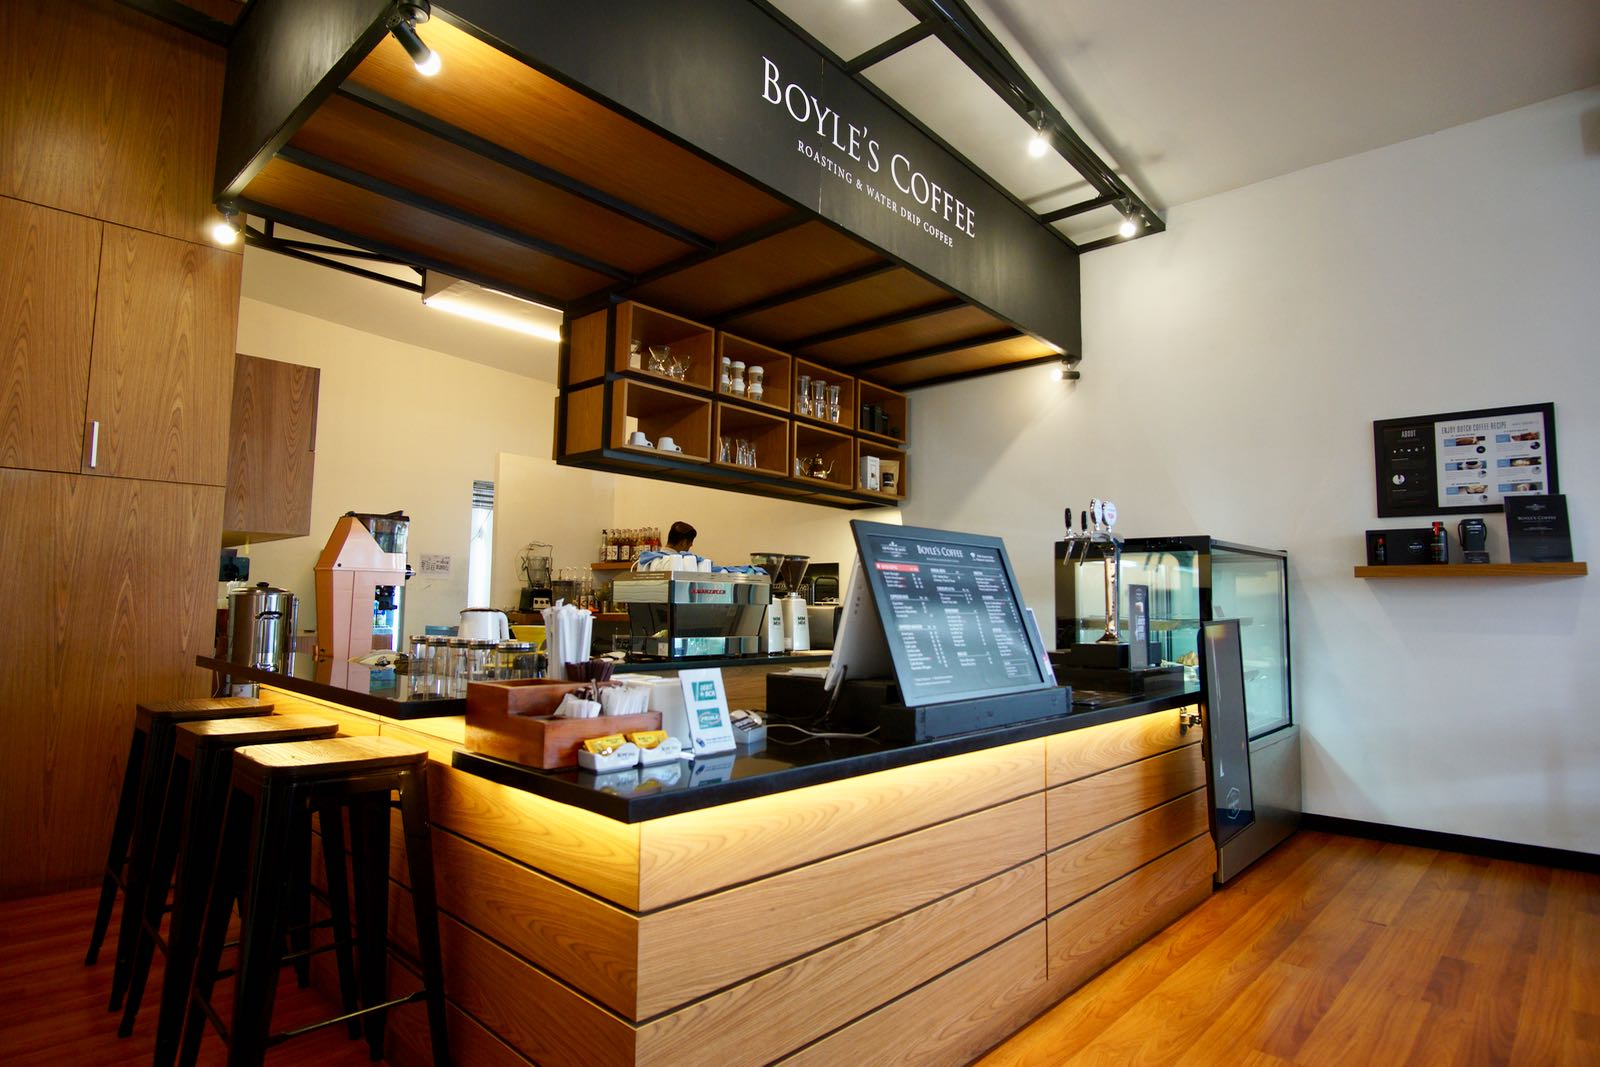 Konter Utama Boyle's Coffee